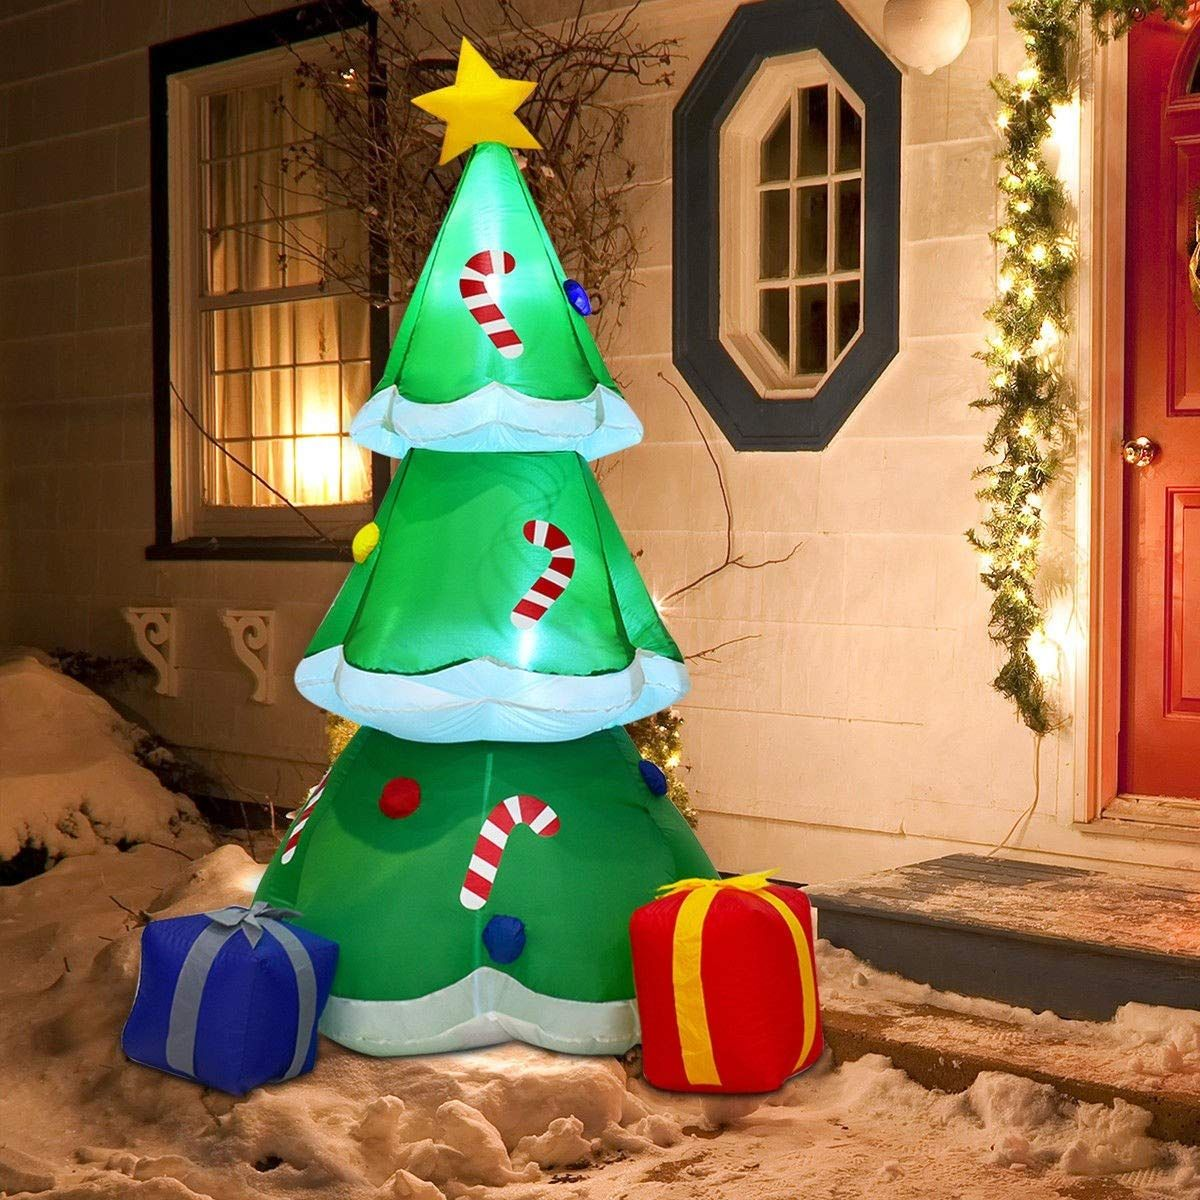 Frolic Racn Oon 6 Foot Tall Christmas Inflatable Tree With Gift Boxes Deco In 2020 Christmas Tree With Gifts Inflatable Christmas Tree Inflatable Christmas Decorations